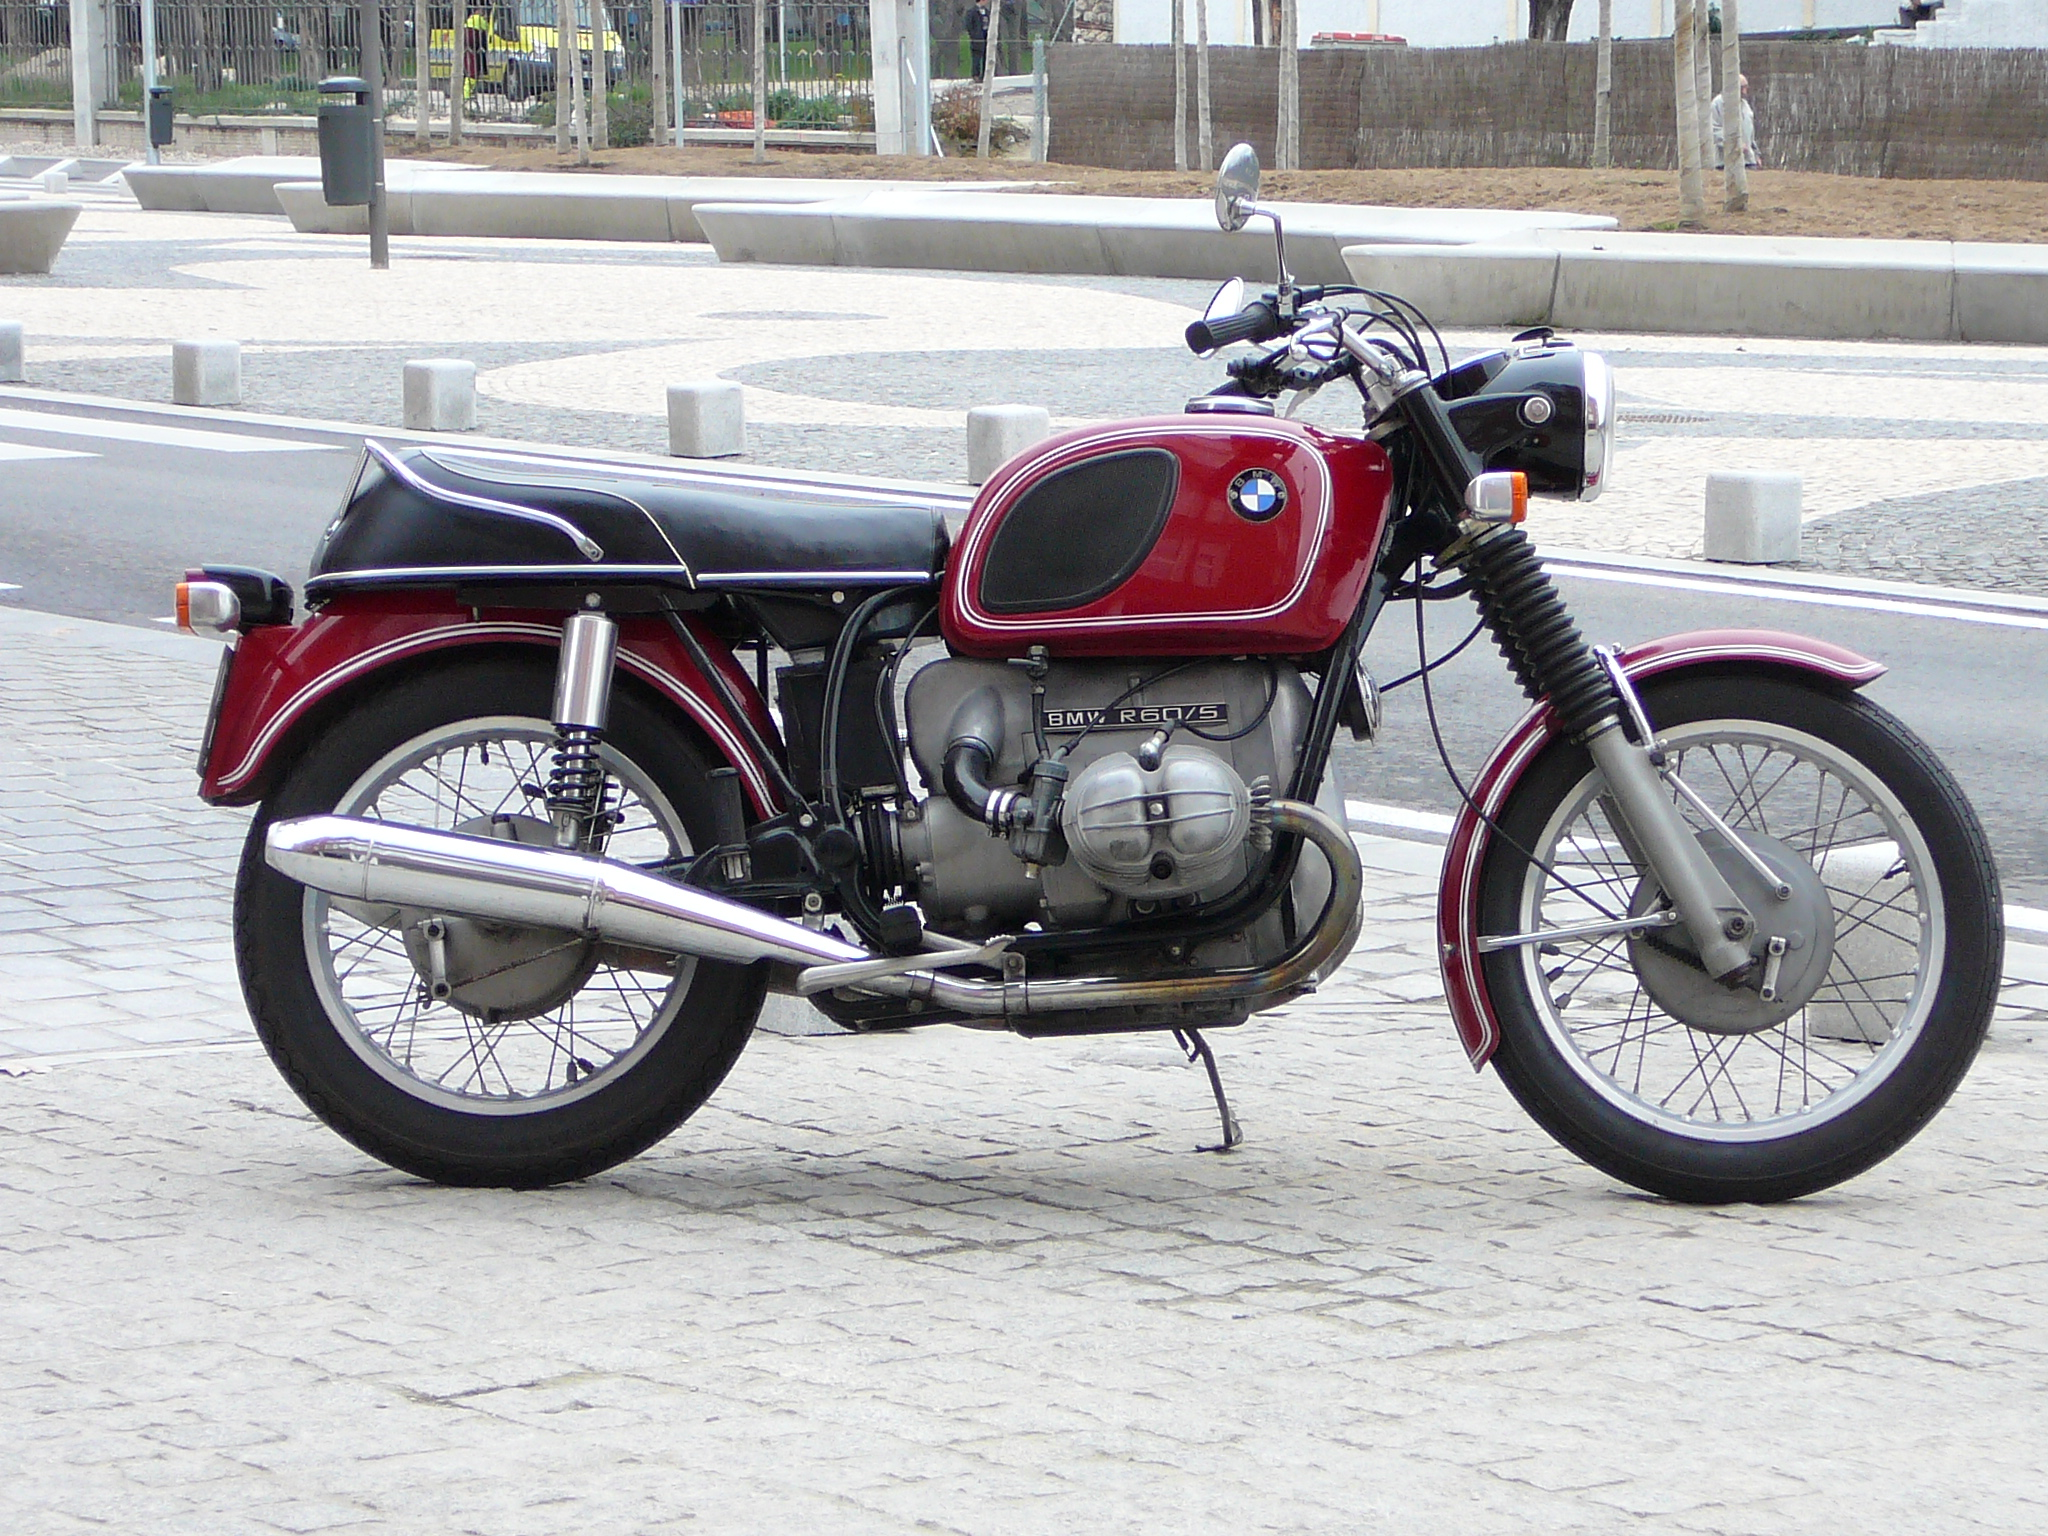 1979 bmw r75/7: pics, specs and information - onlymotorbikes